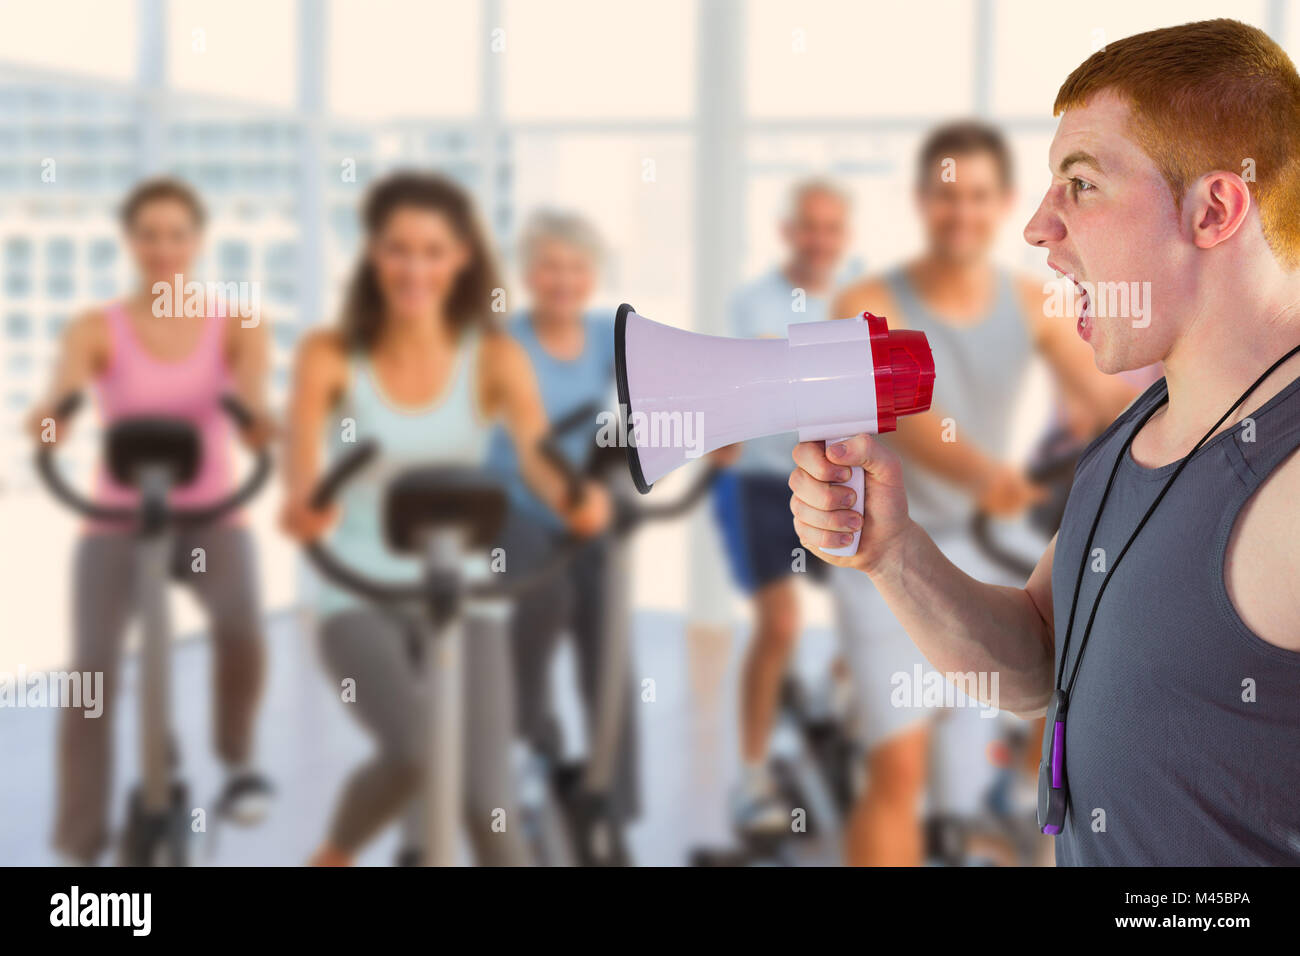 Composite image of angry personal trainer yelling through megaphone - Stock Image